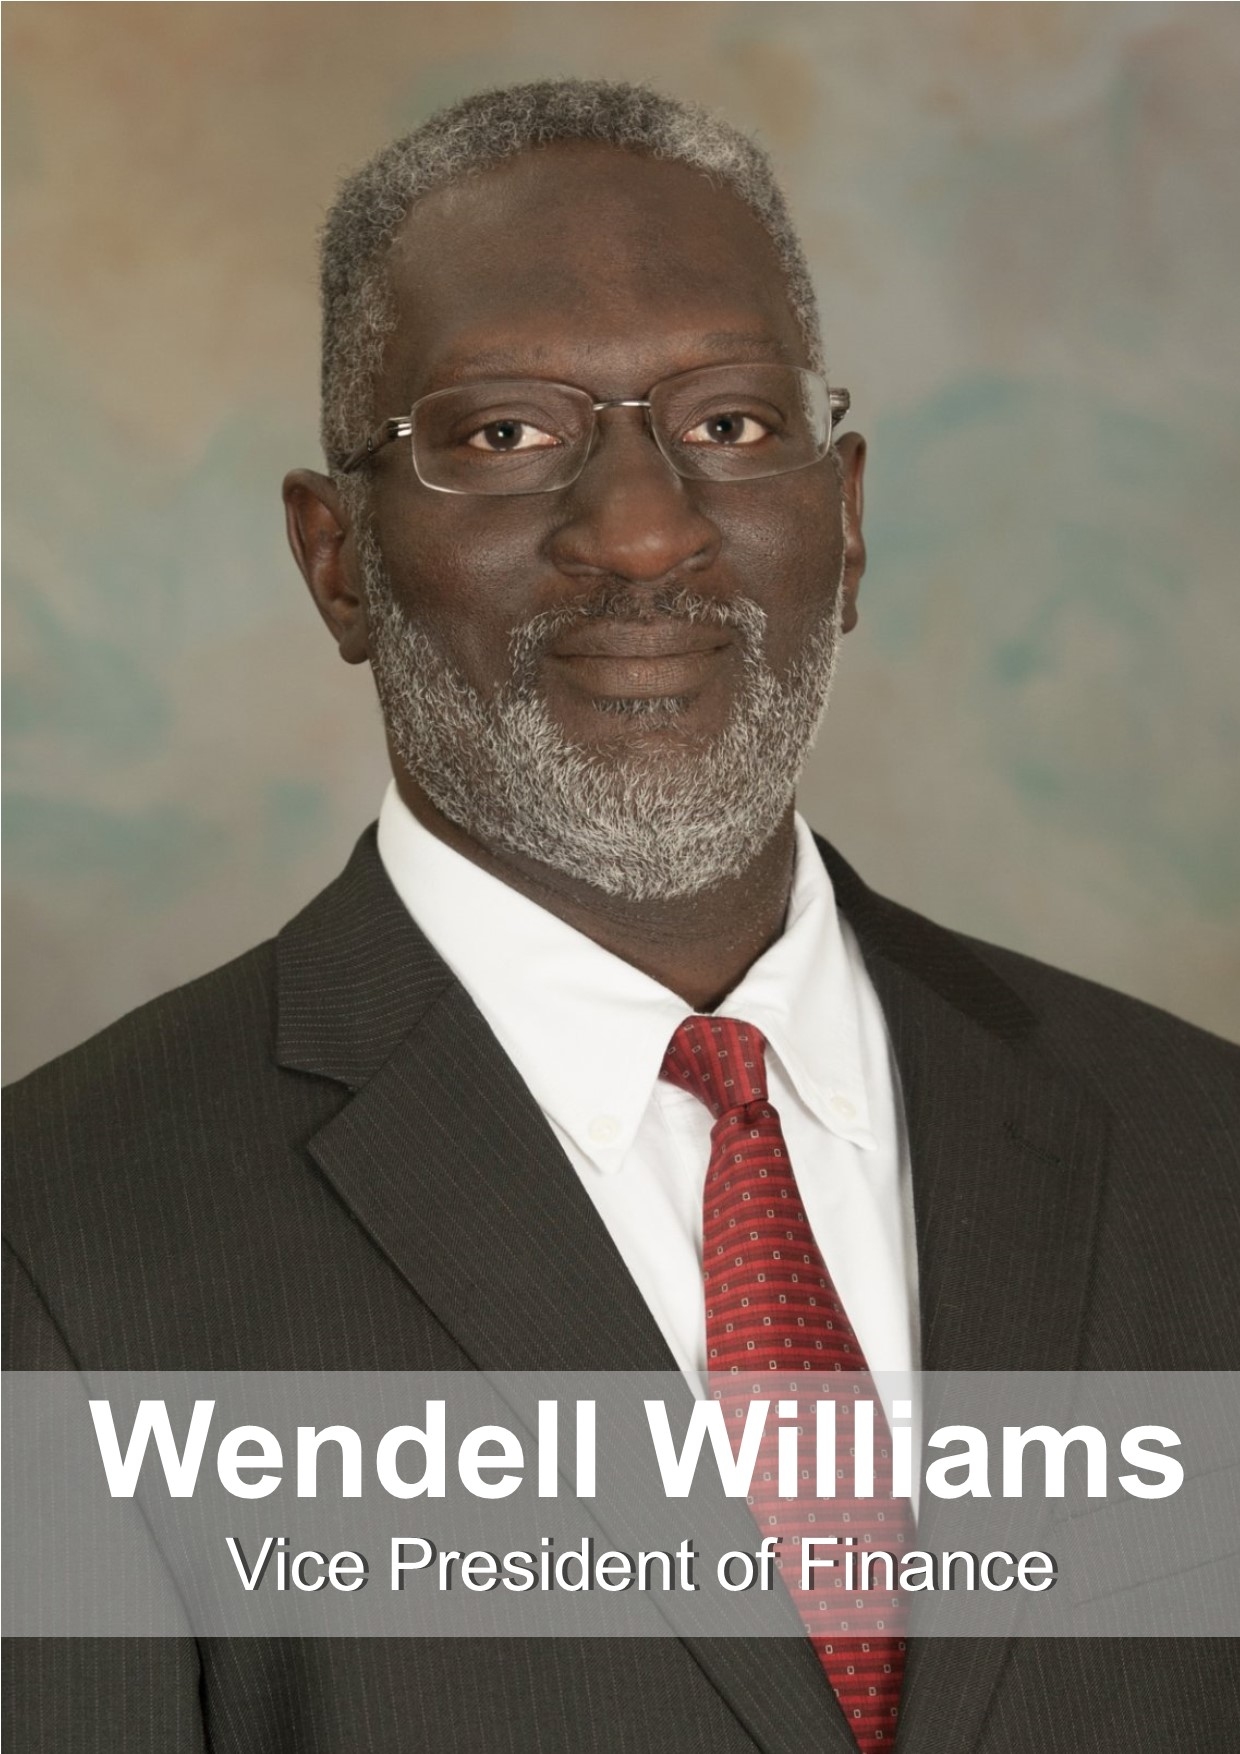 Wendell Williams Manager of Finance